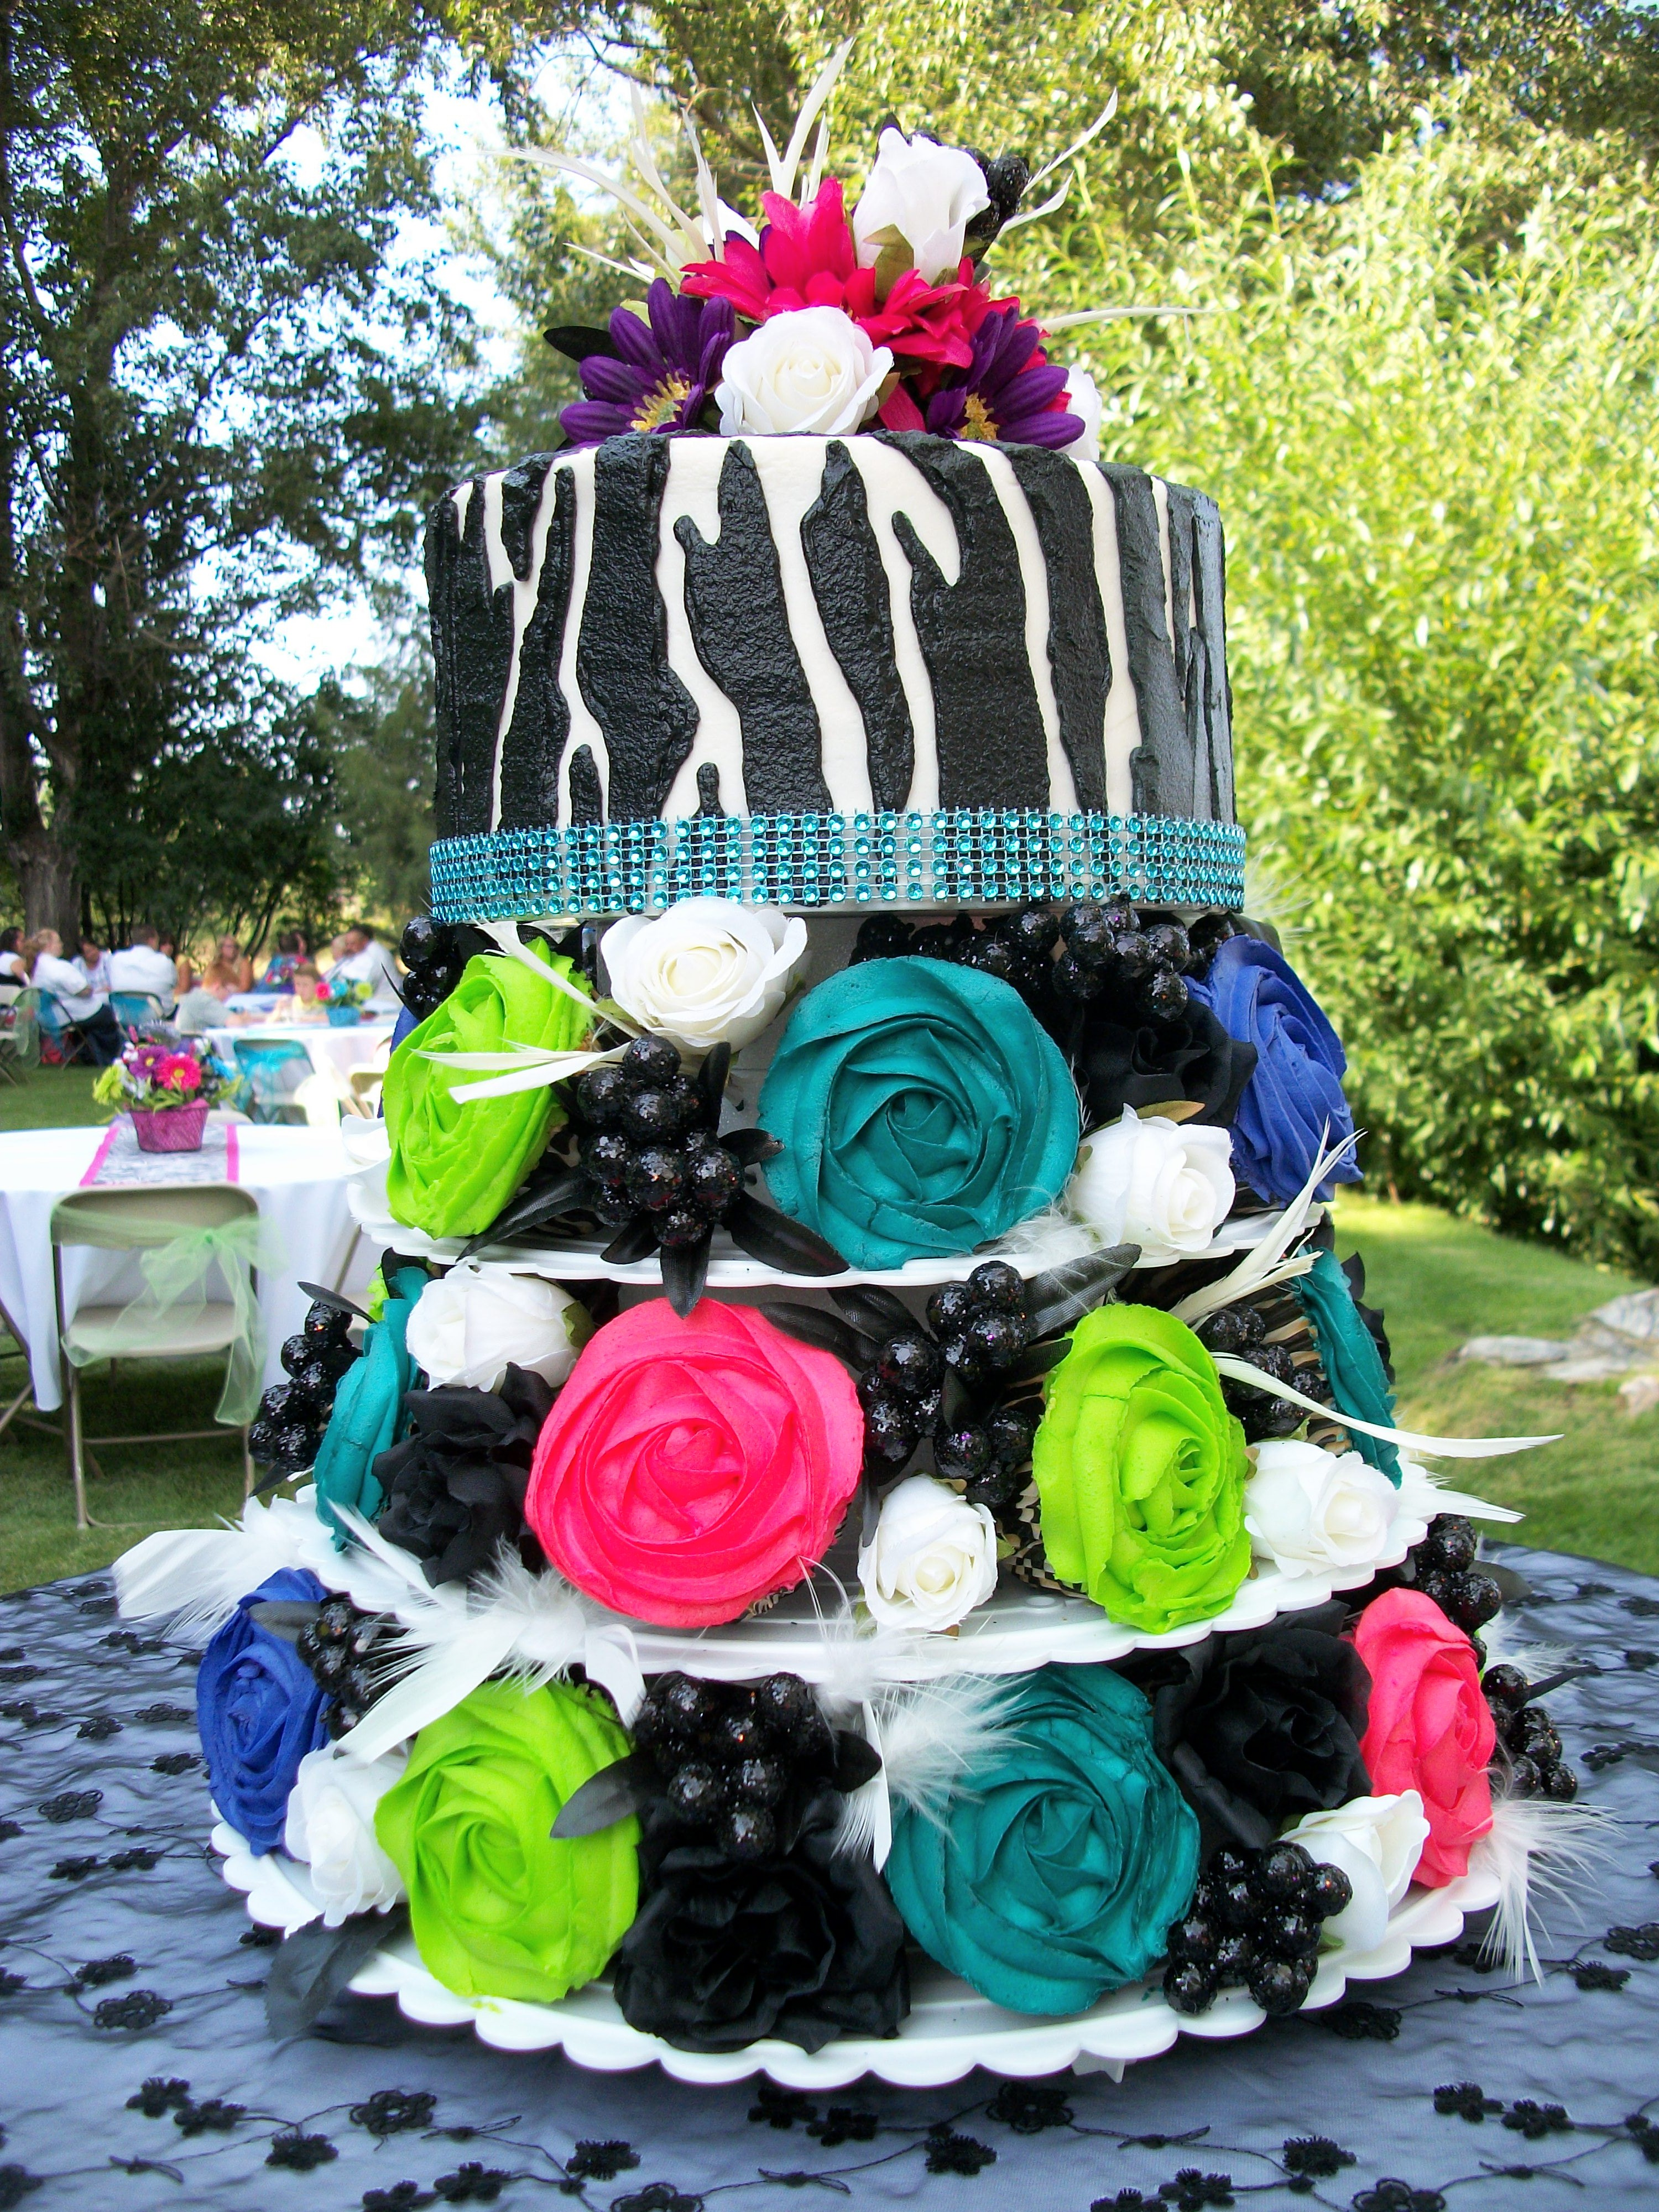 Uncategorized Cupcake Stands For Weddings Cheap - Vibrant cupcakes and zebra pattern wedding cake